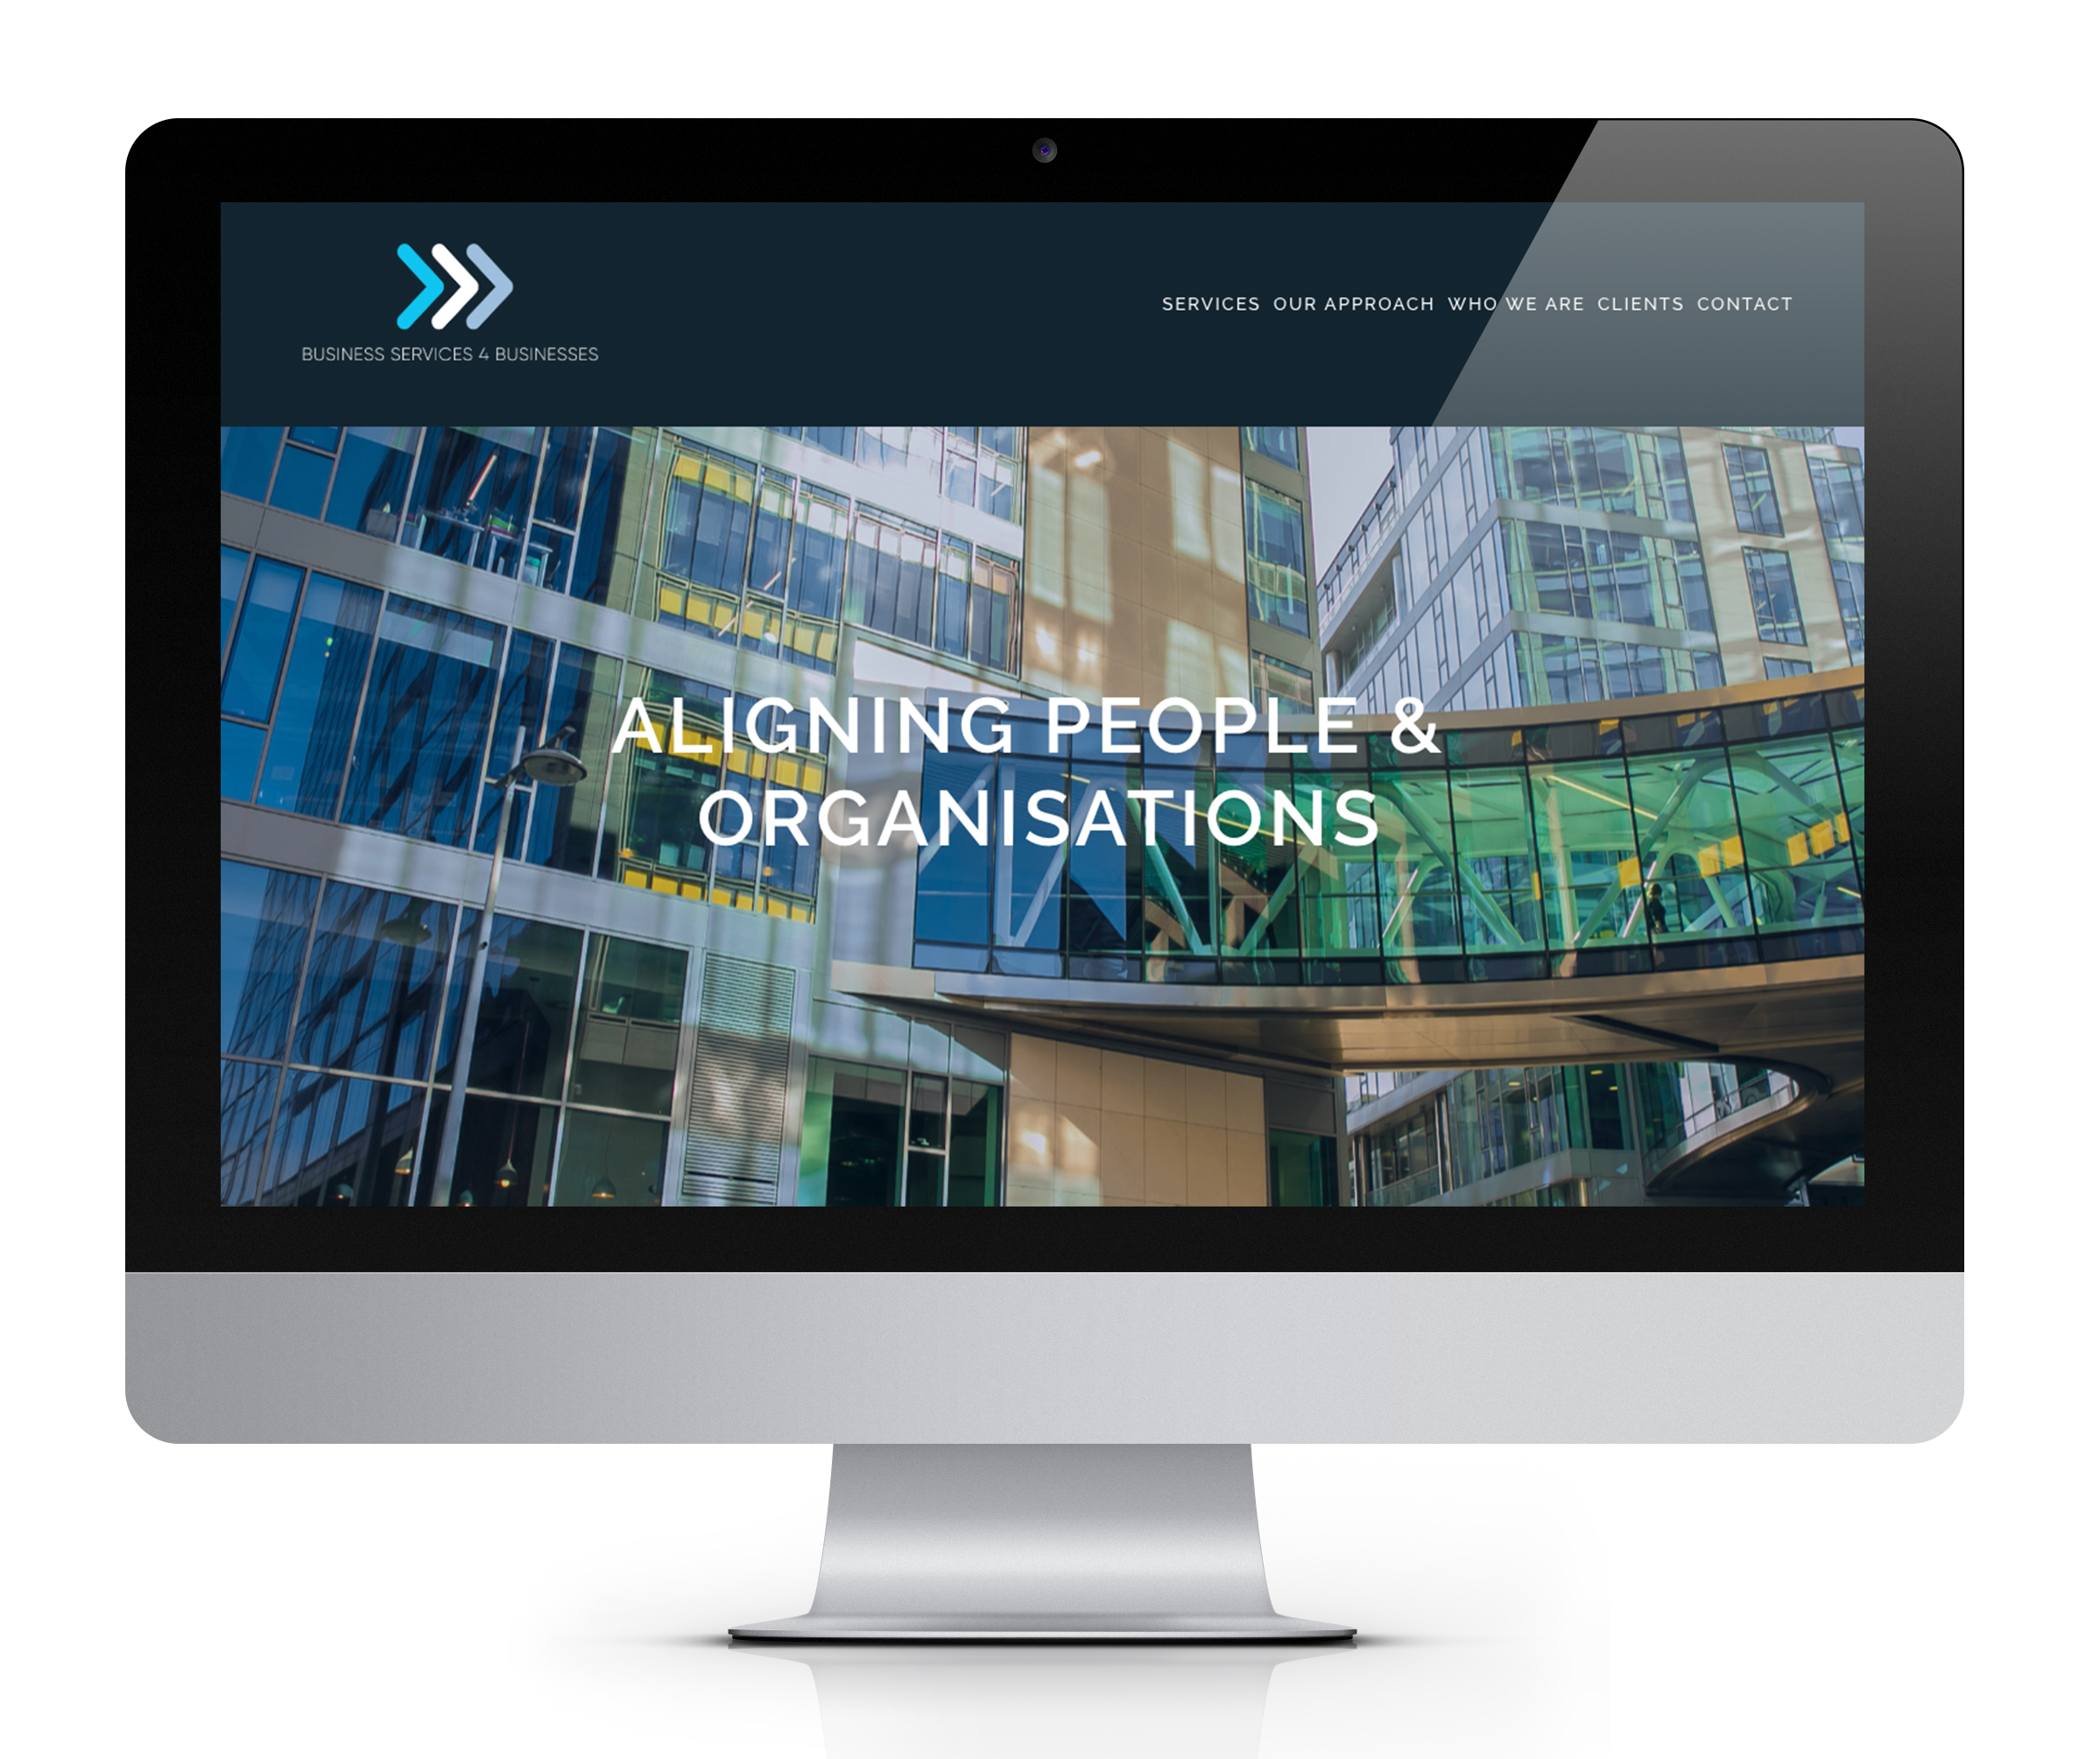 Business Services 4 Businesses is a small consulting firm of three of Ireland's leading business consultants. They wanted a professional-looking site that clearly presented their services, clients and contact details.